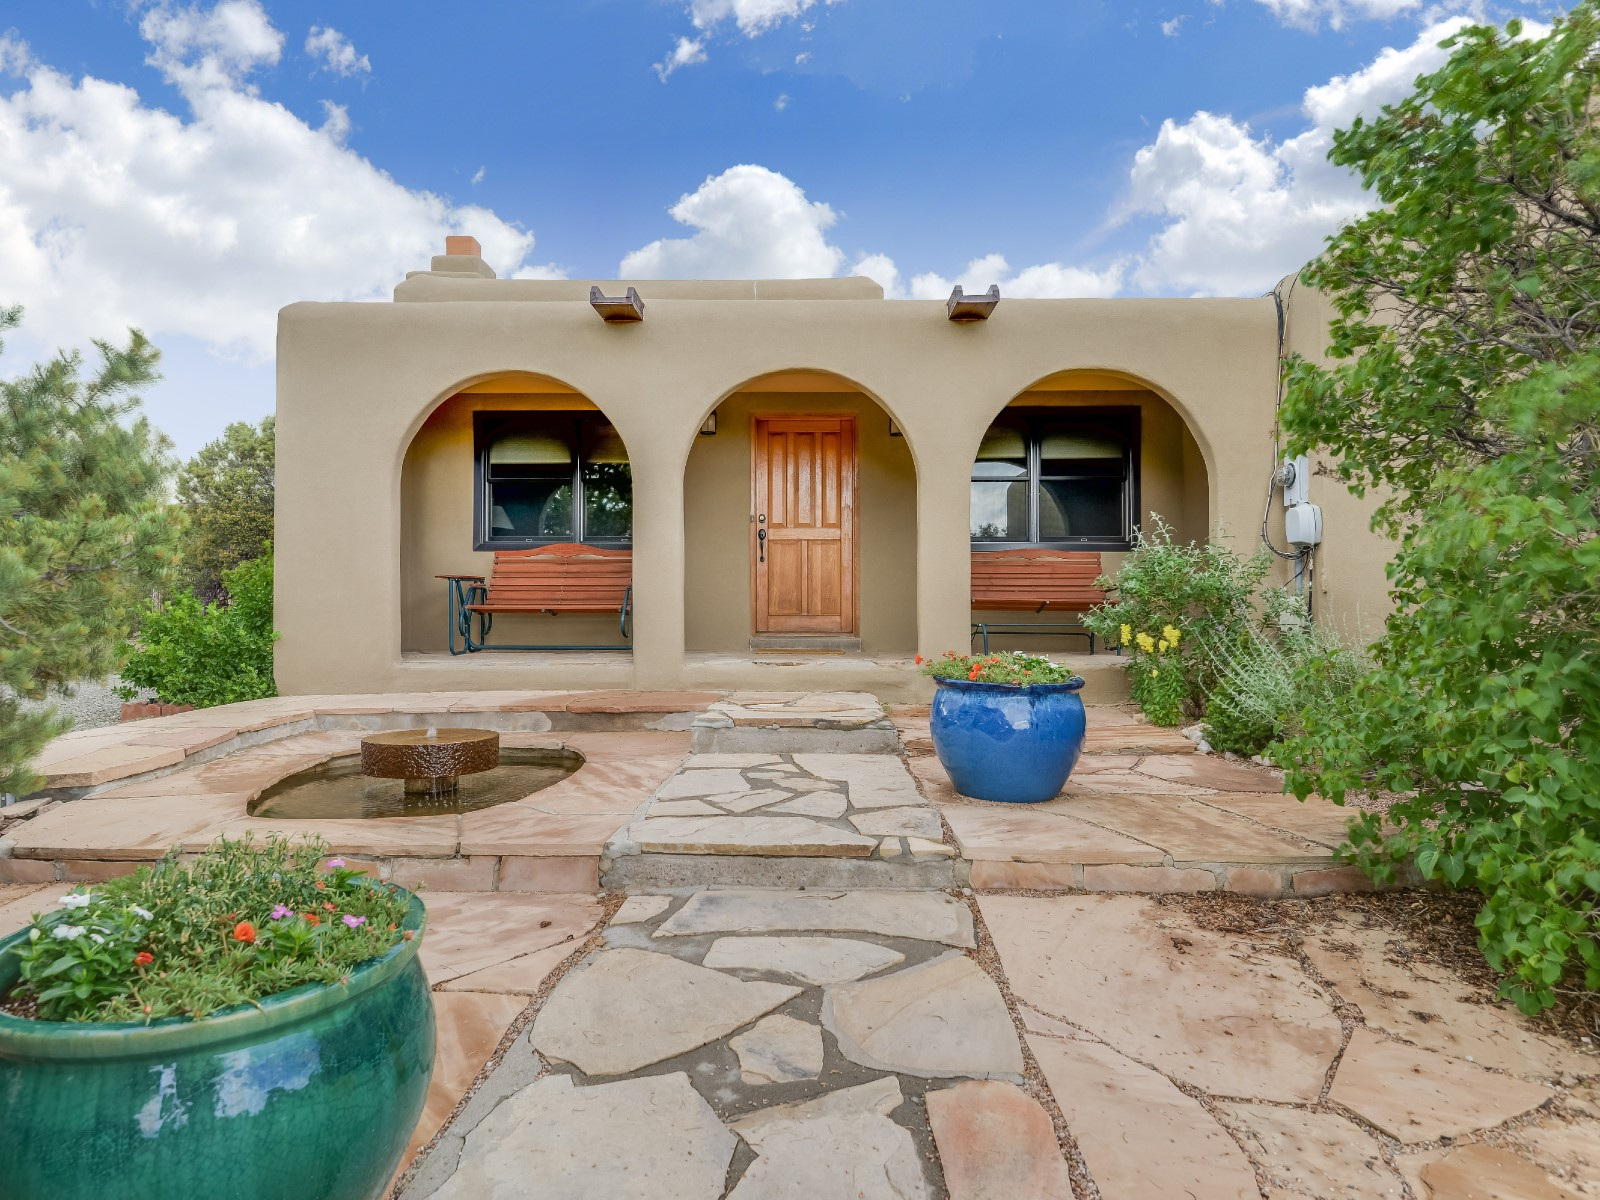 Single Family Home for Sale at 2 Ute Circle Santa Fe, New Mexico 87505 United States